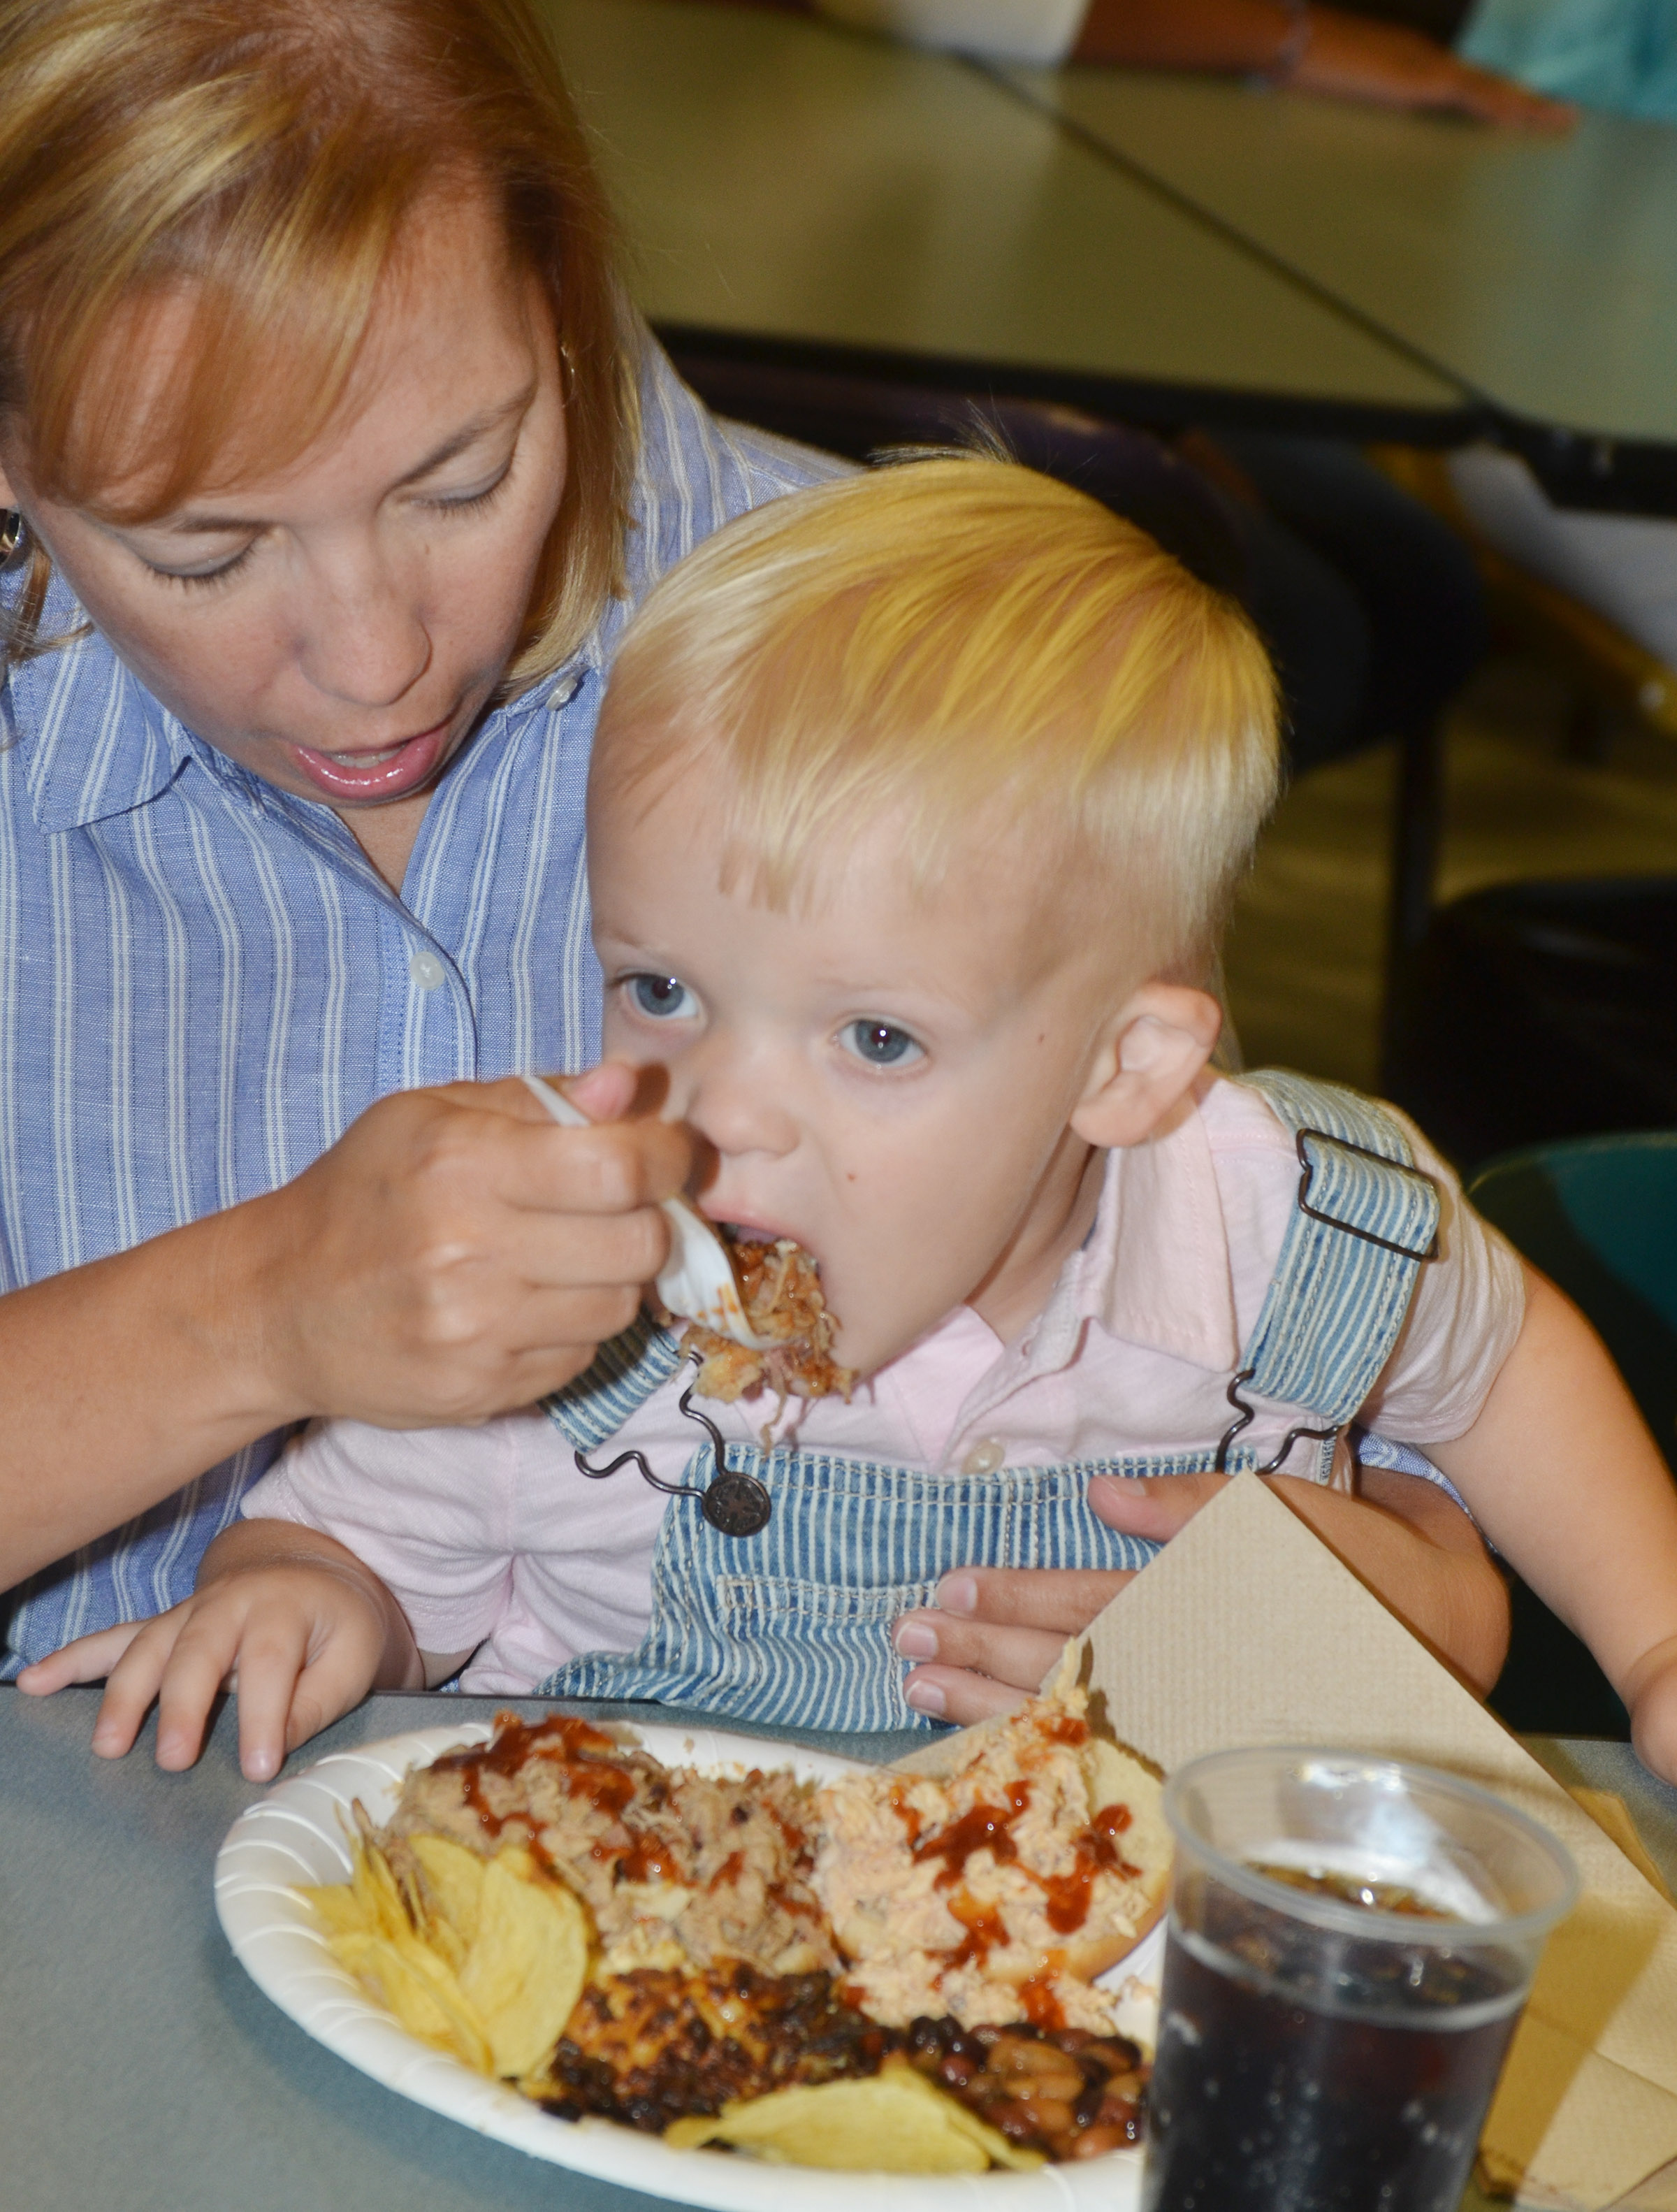 Erin Estes helps her son, Cooper, eat a bite of barbecue at the annual CHS football dinner and auction. Estes is married to Dale Estes, the head football coach at CHS.